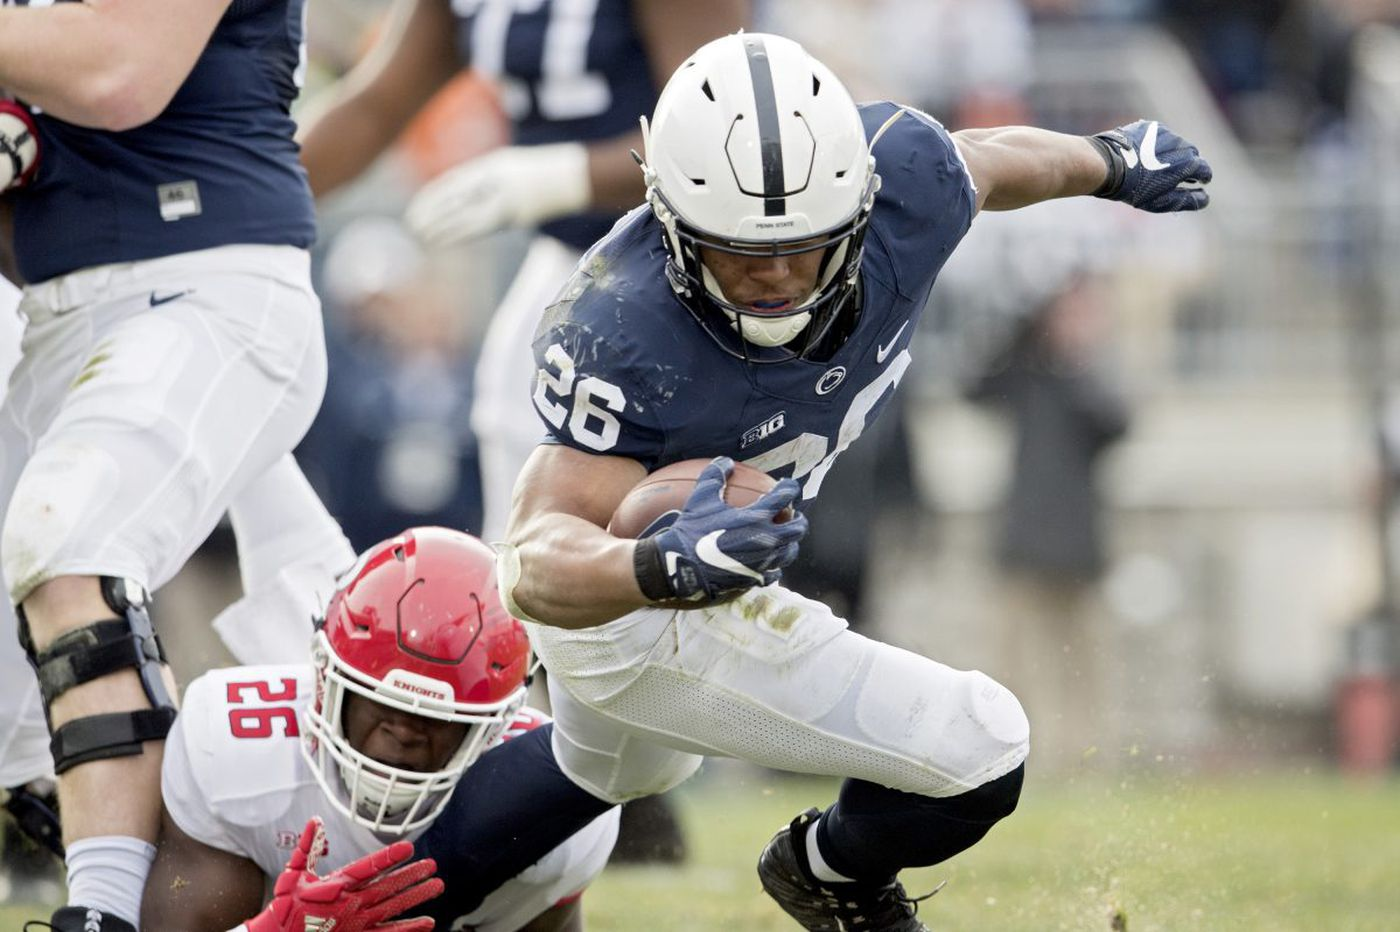 Kern's college football roundup: Penn State gets back on track against Rutgers